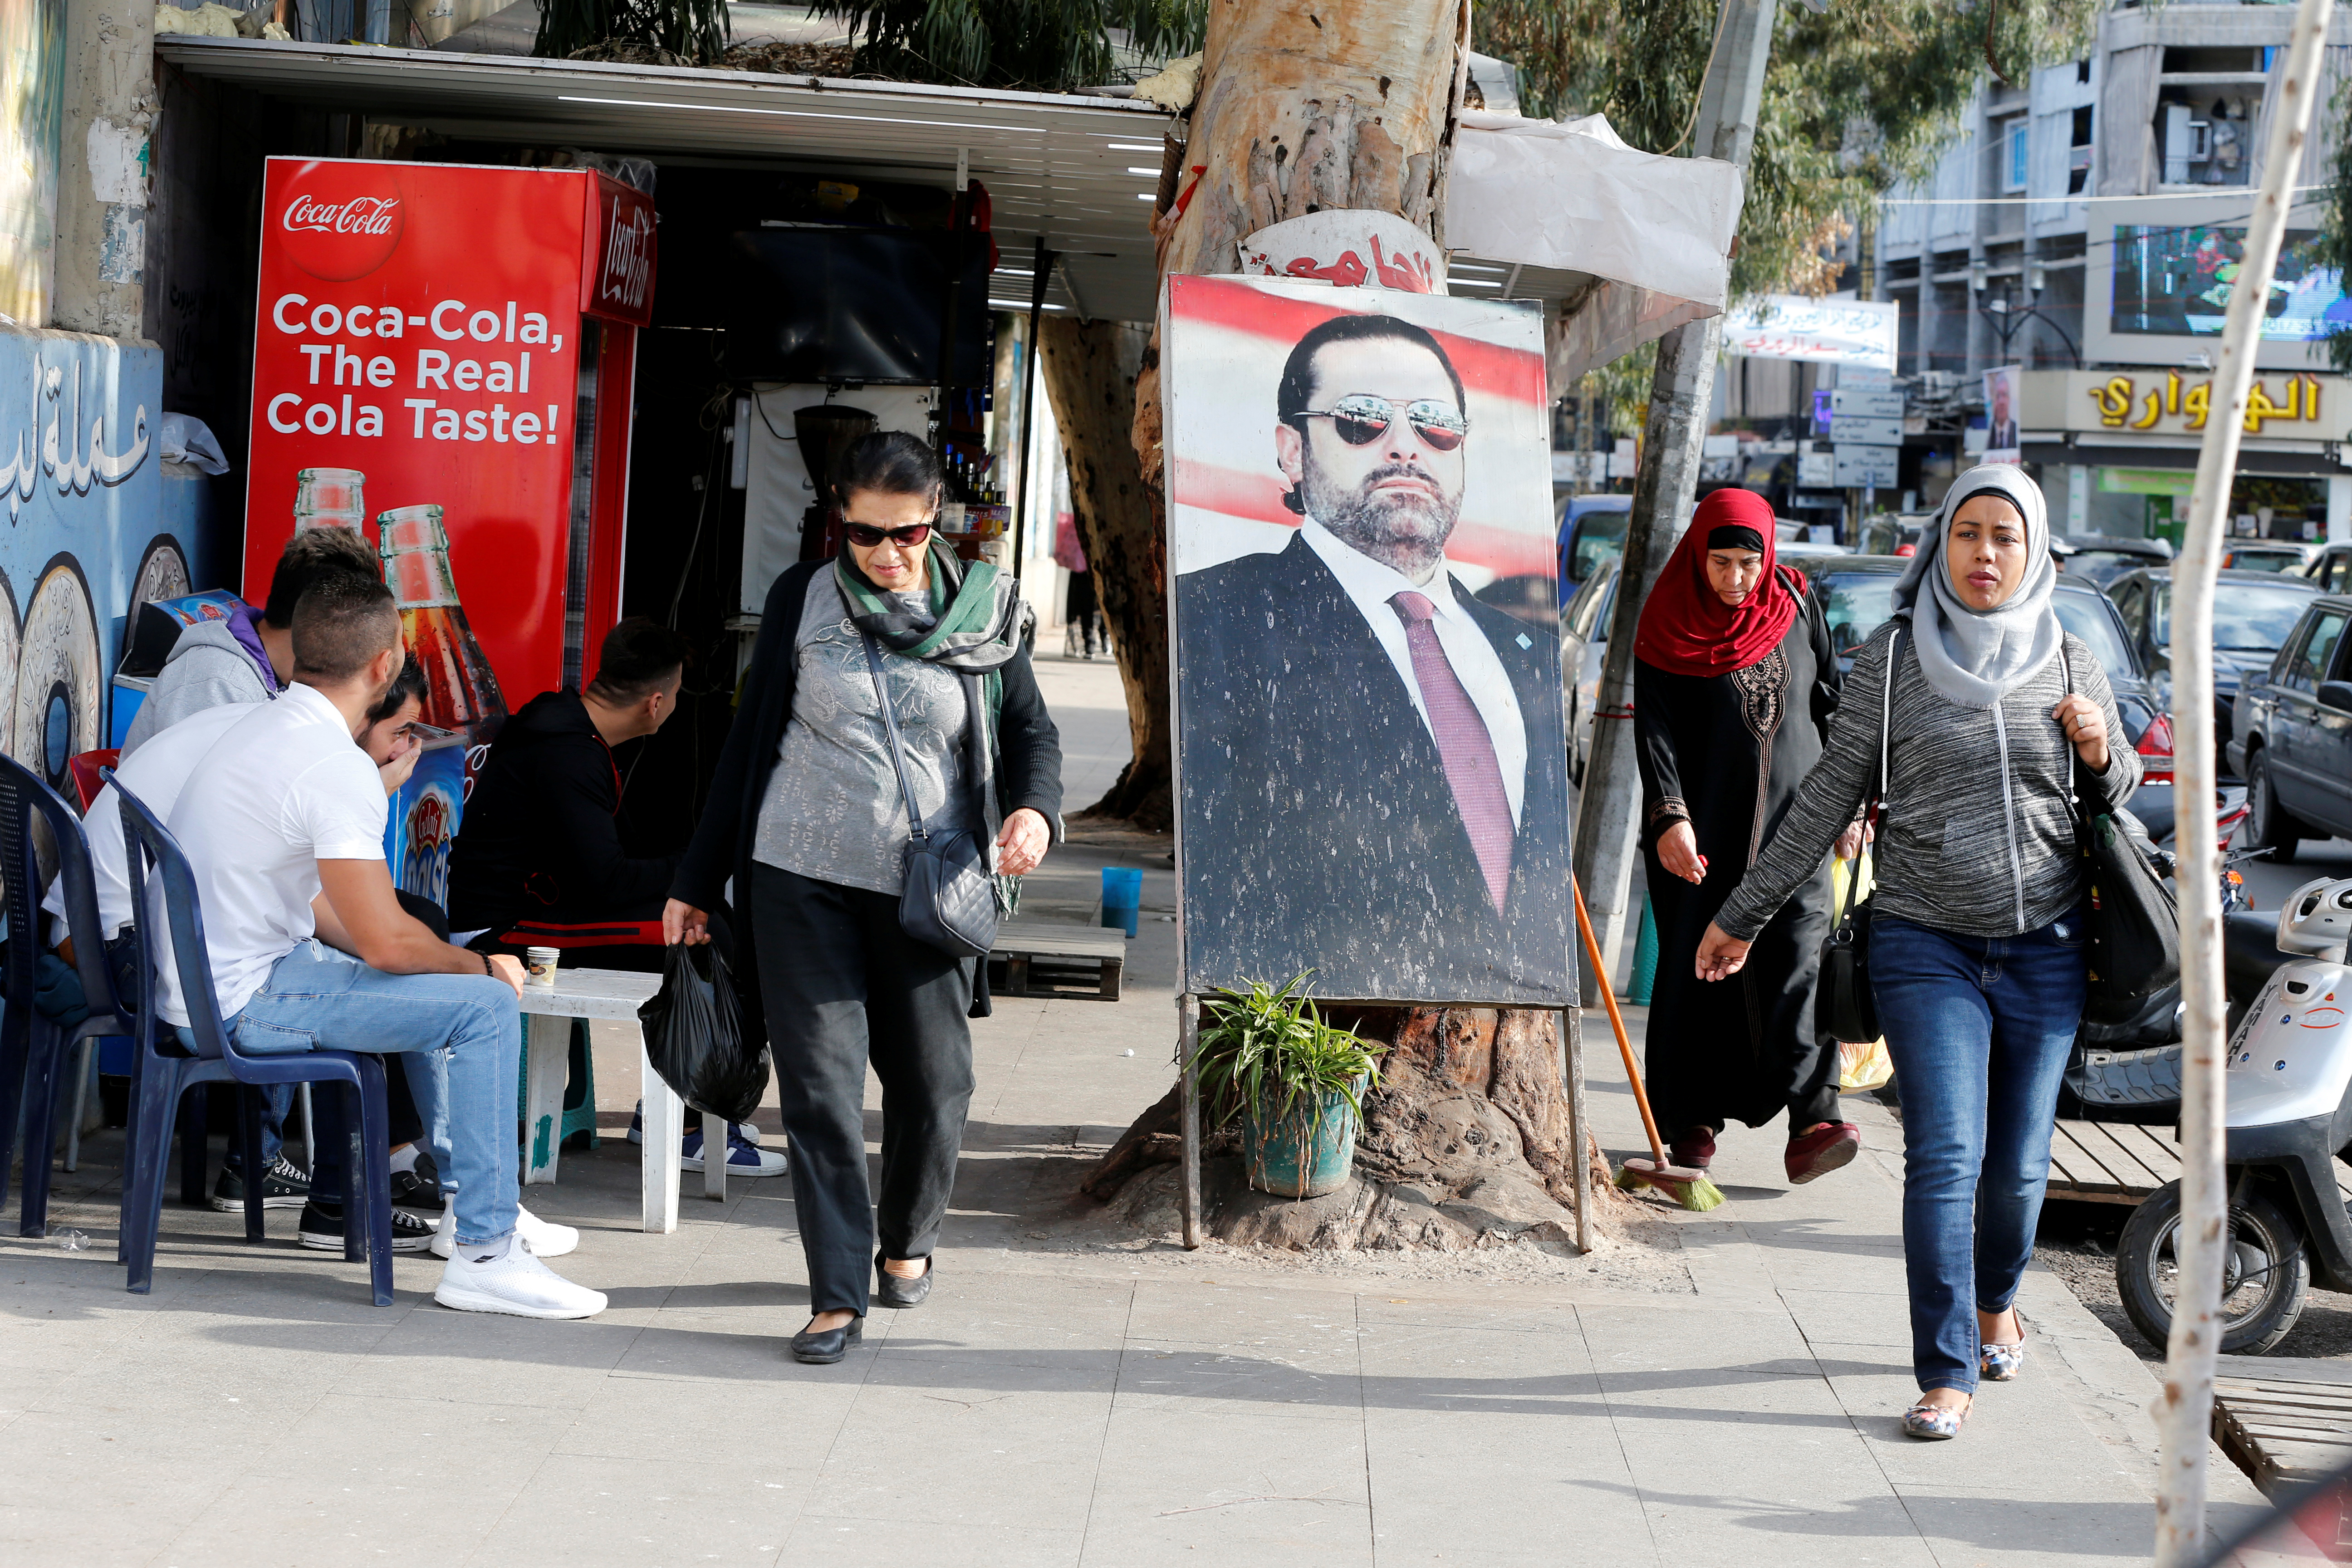 People walk next to a poster depicting Lebanon's Prime Minister Saad al-Hariri, who has resigned from his post, along a street in the mainly Sunni Beirut neighbourhood of Tariq al-Jadideh in Beirut, Lebanon November 6, 2017. REUTERS/Mohamed Azakir - RC1556EE7010